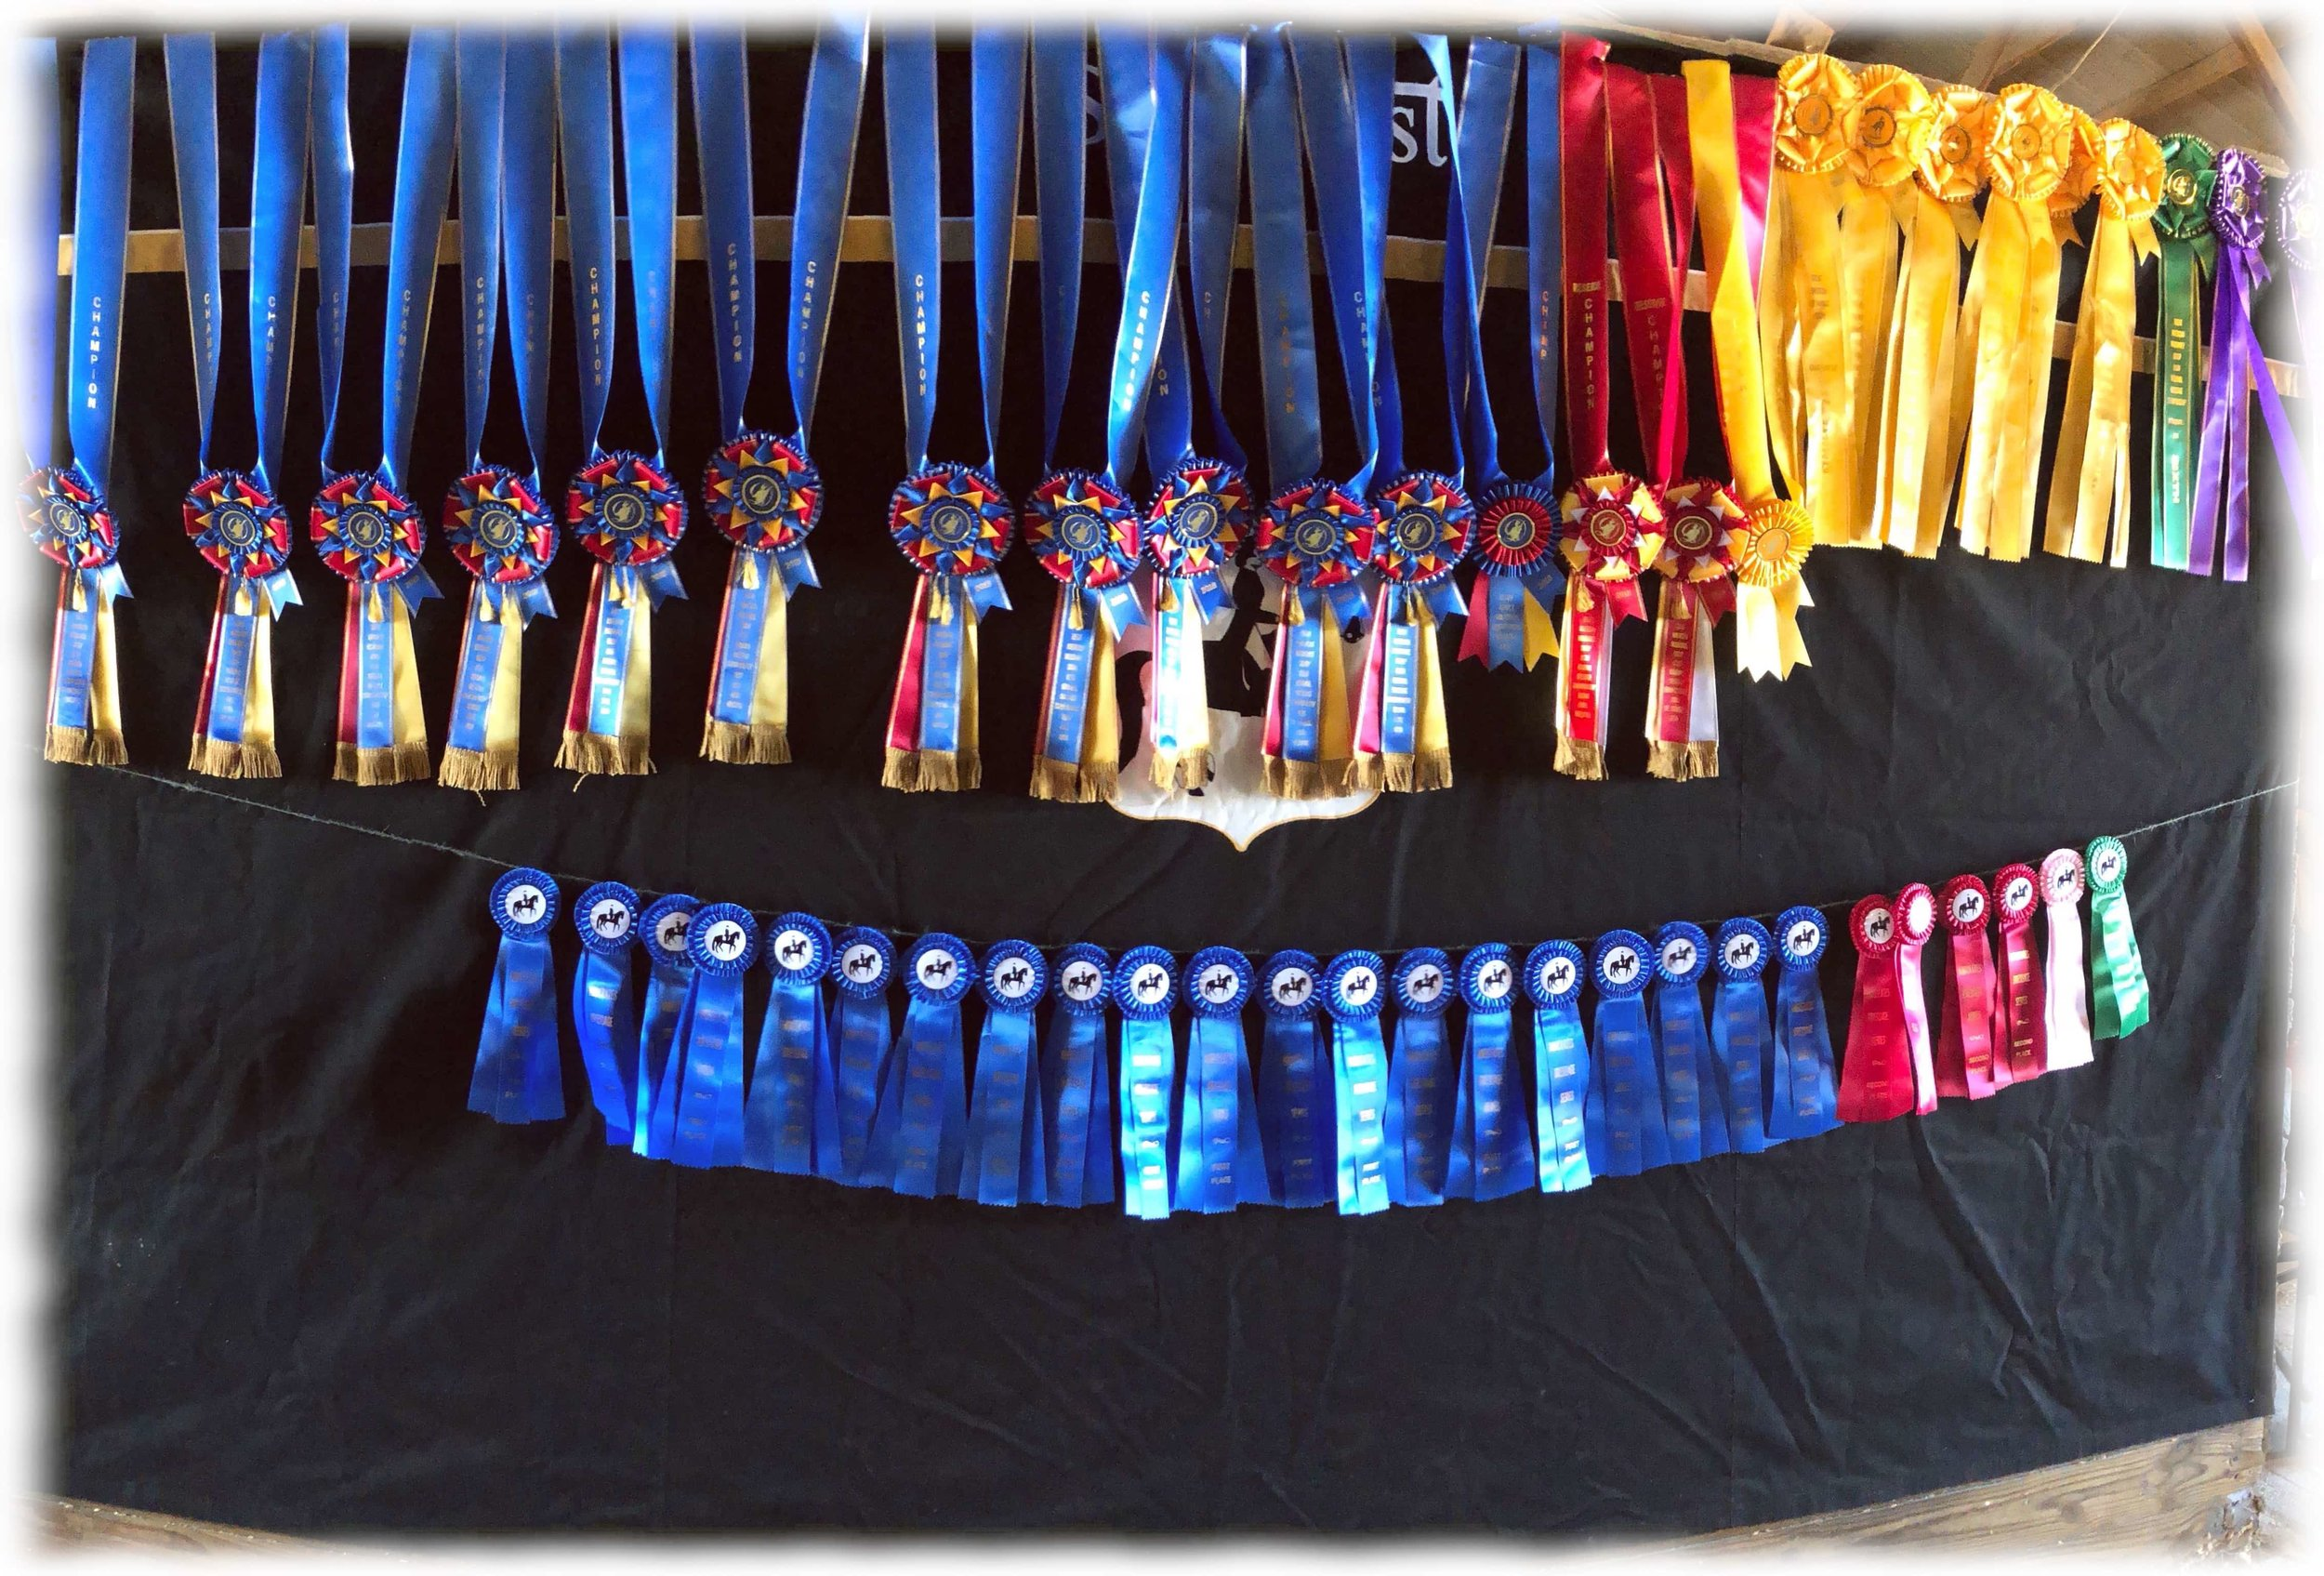 Most of the awards won by StarWest at Regionals